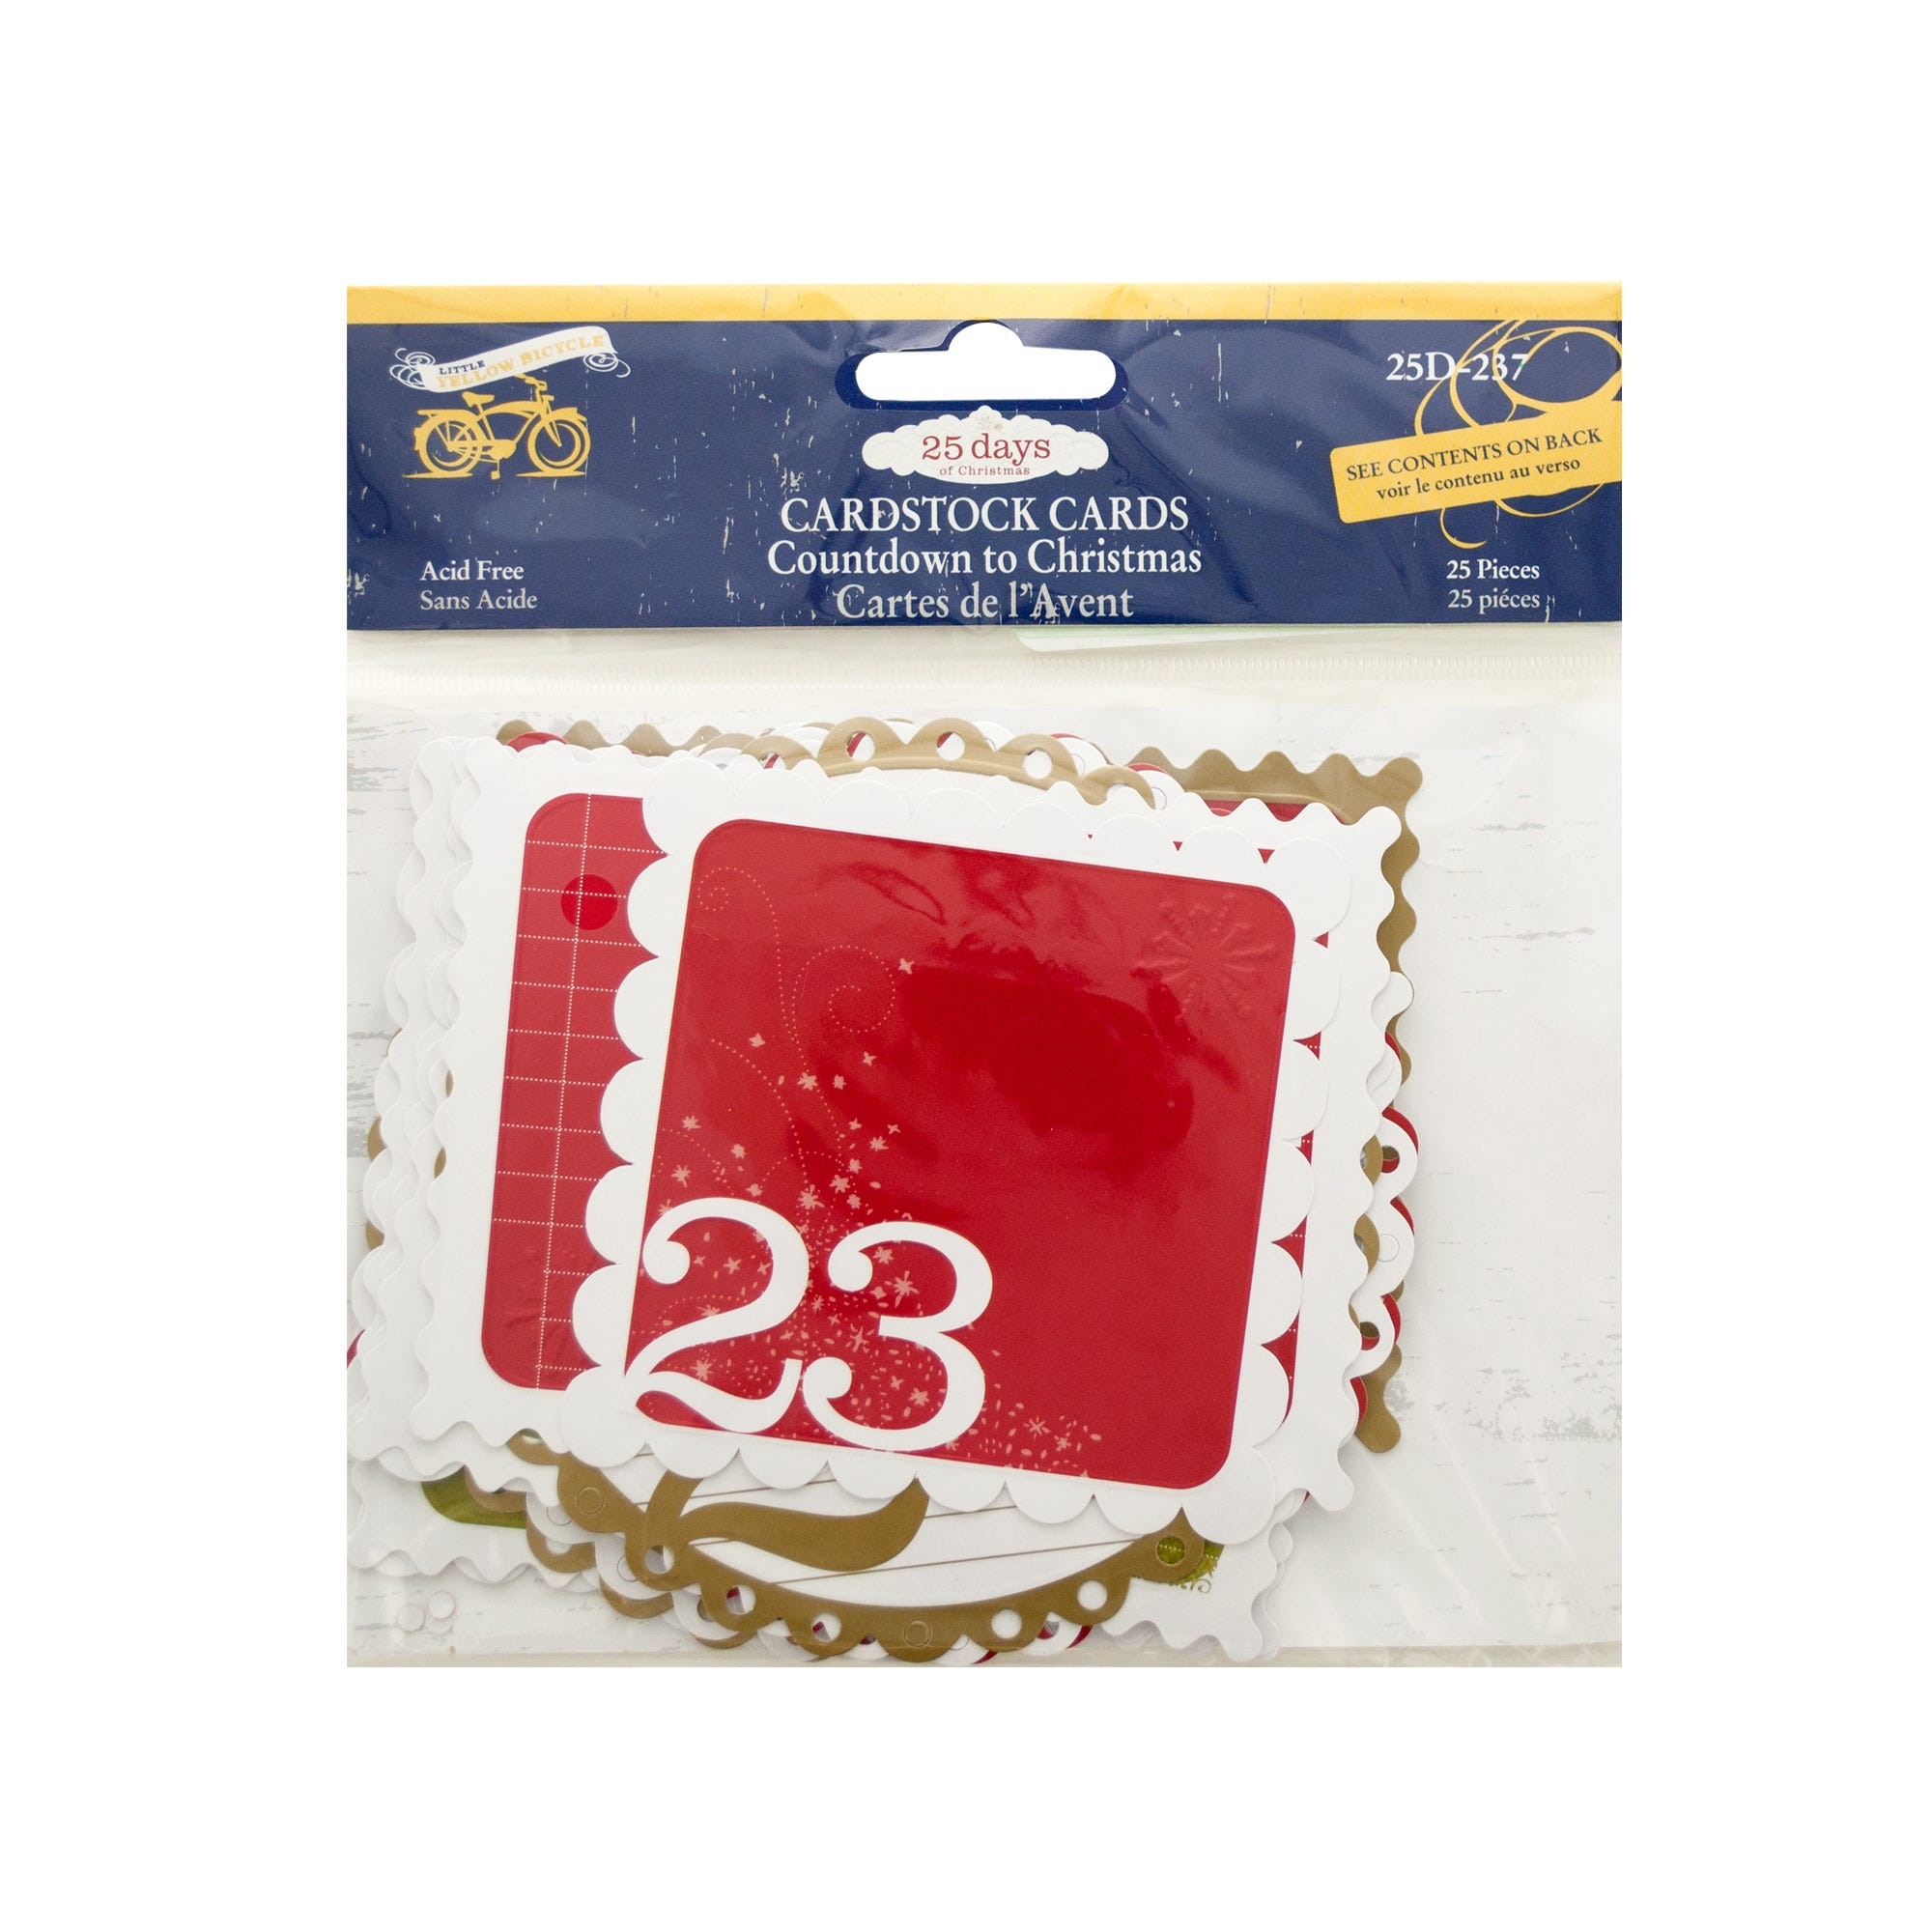 25-days-of-CHRISTMAS-cardstock-cards